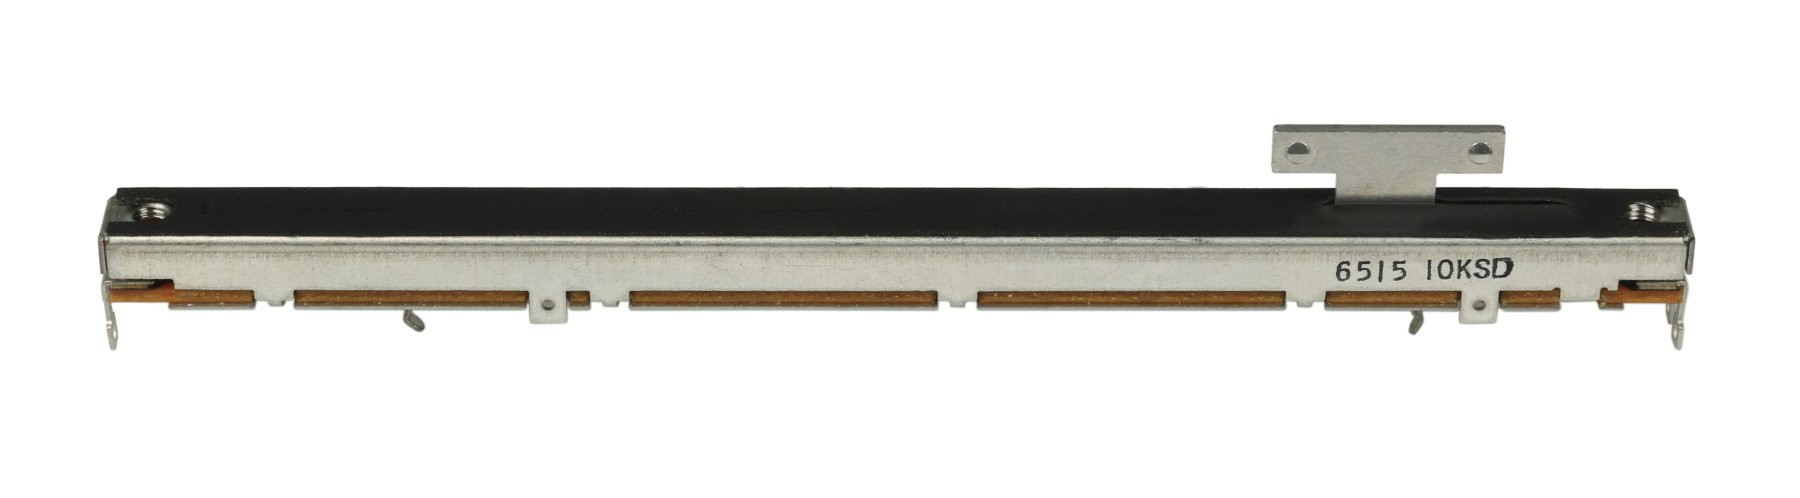 Mono Channel Fader for Powerstation 600, EMP12, EFX Series